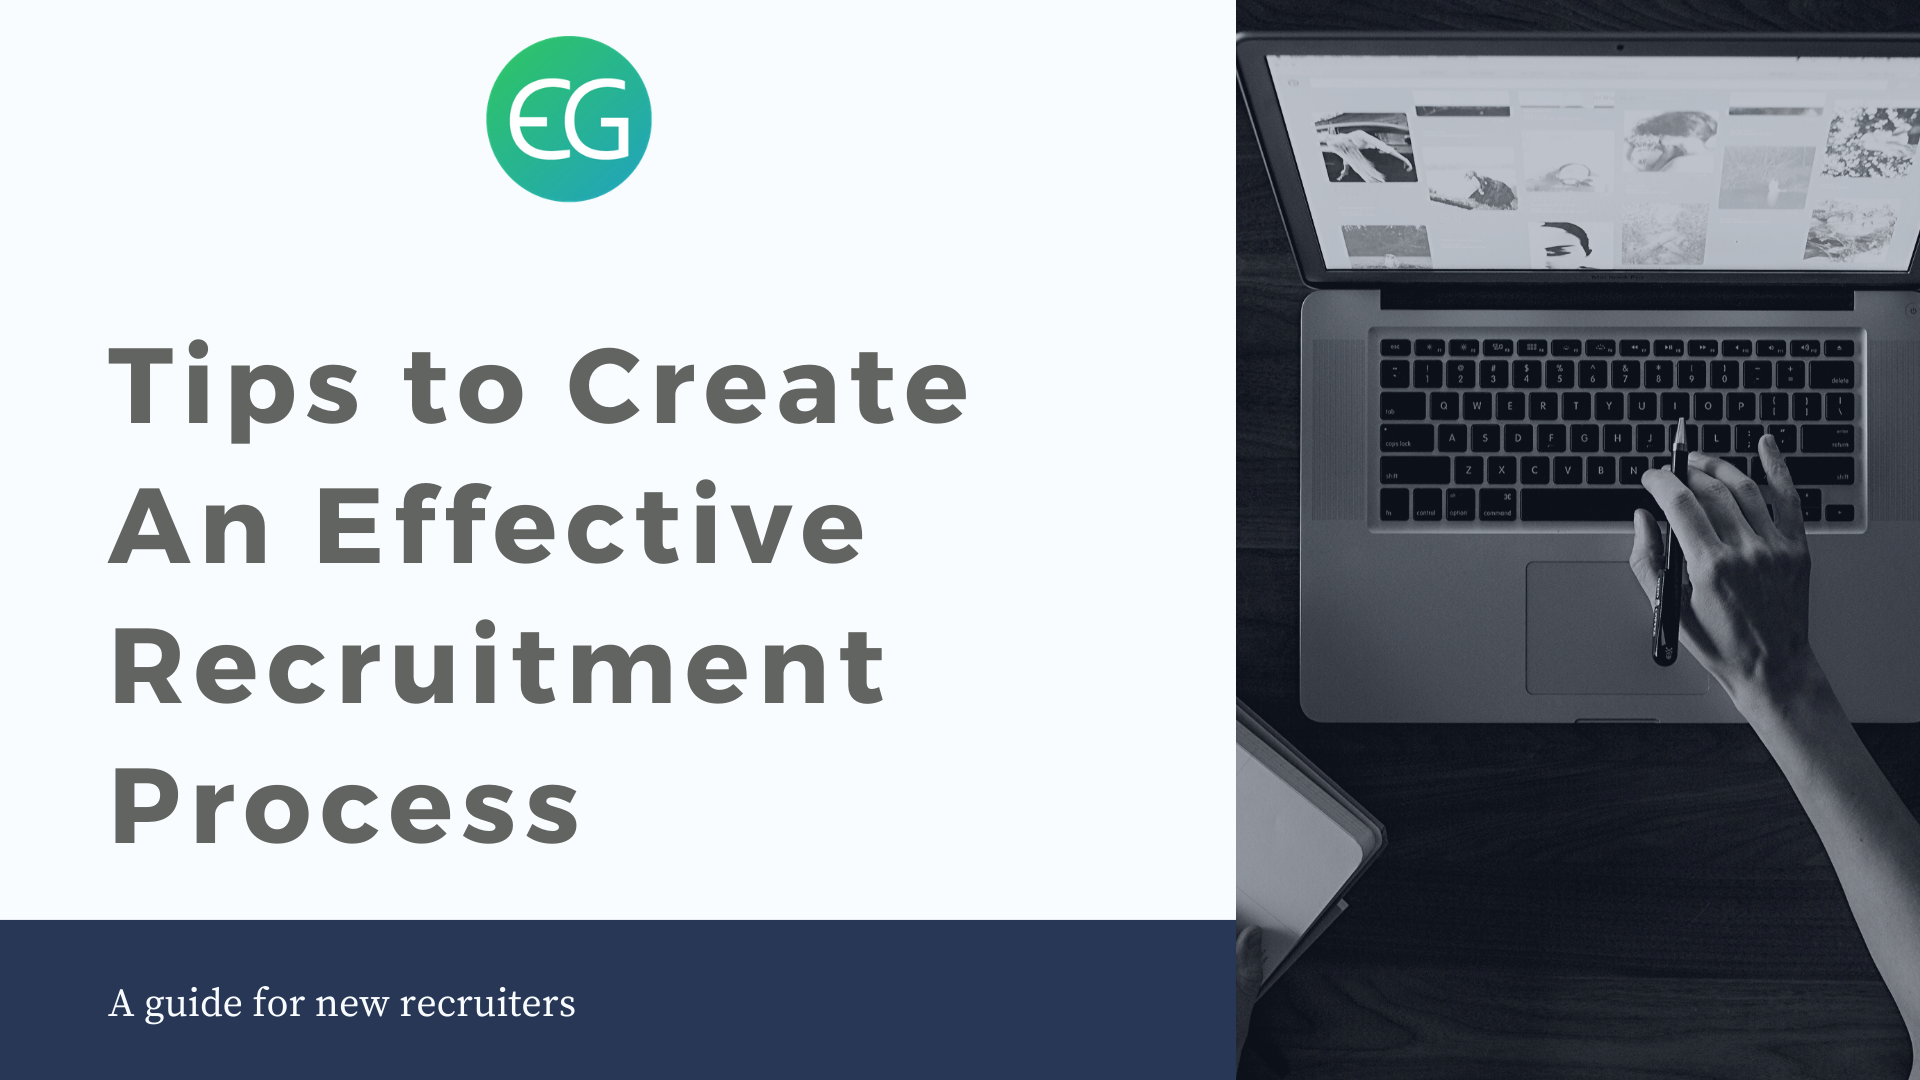 Tips to Create An Effective Recruitment Process